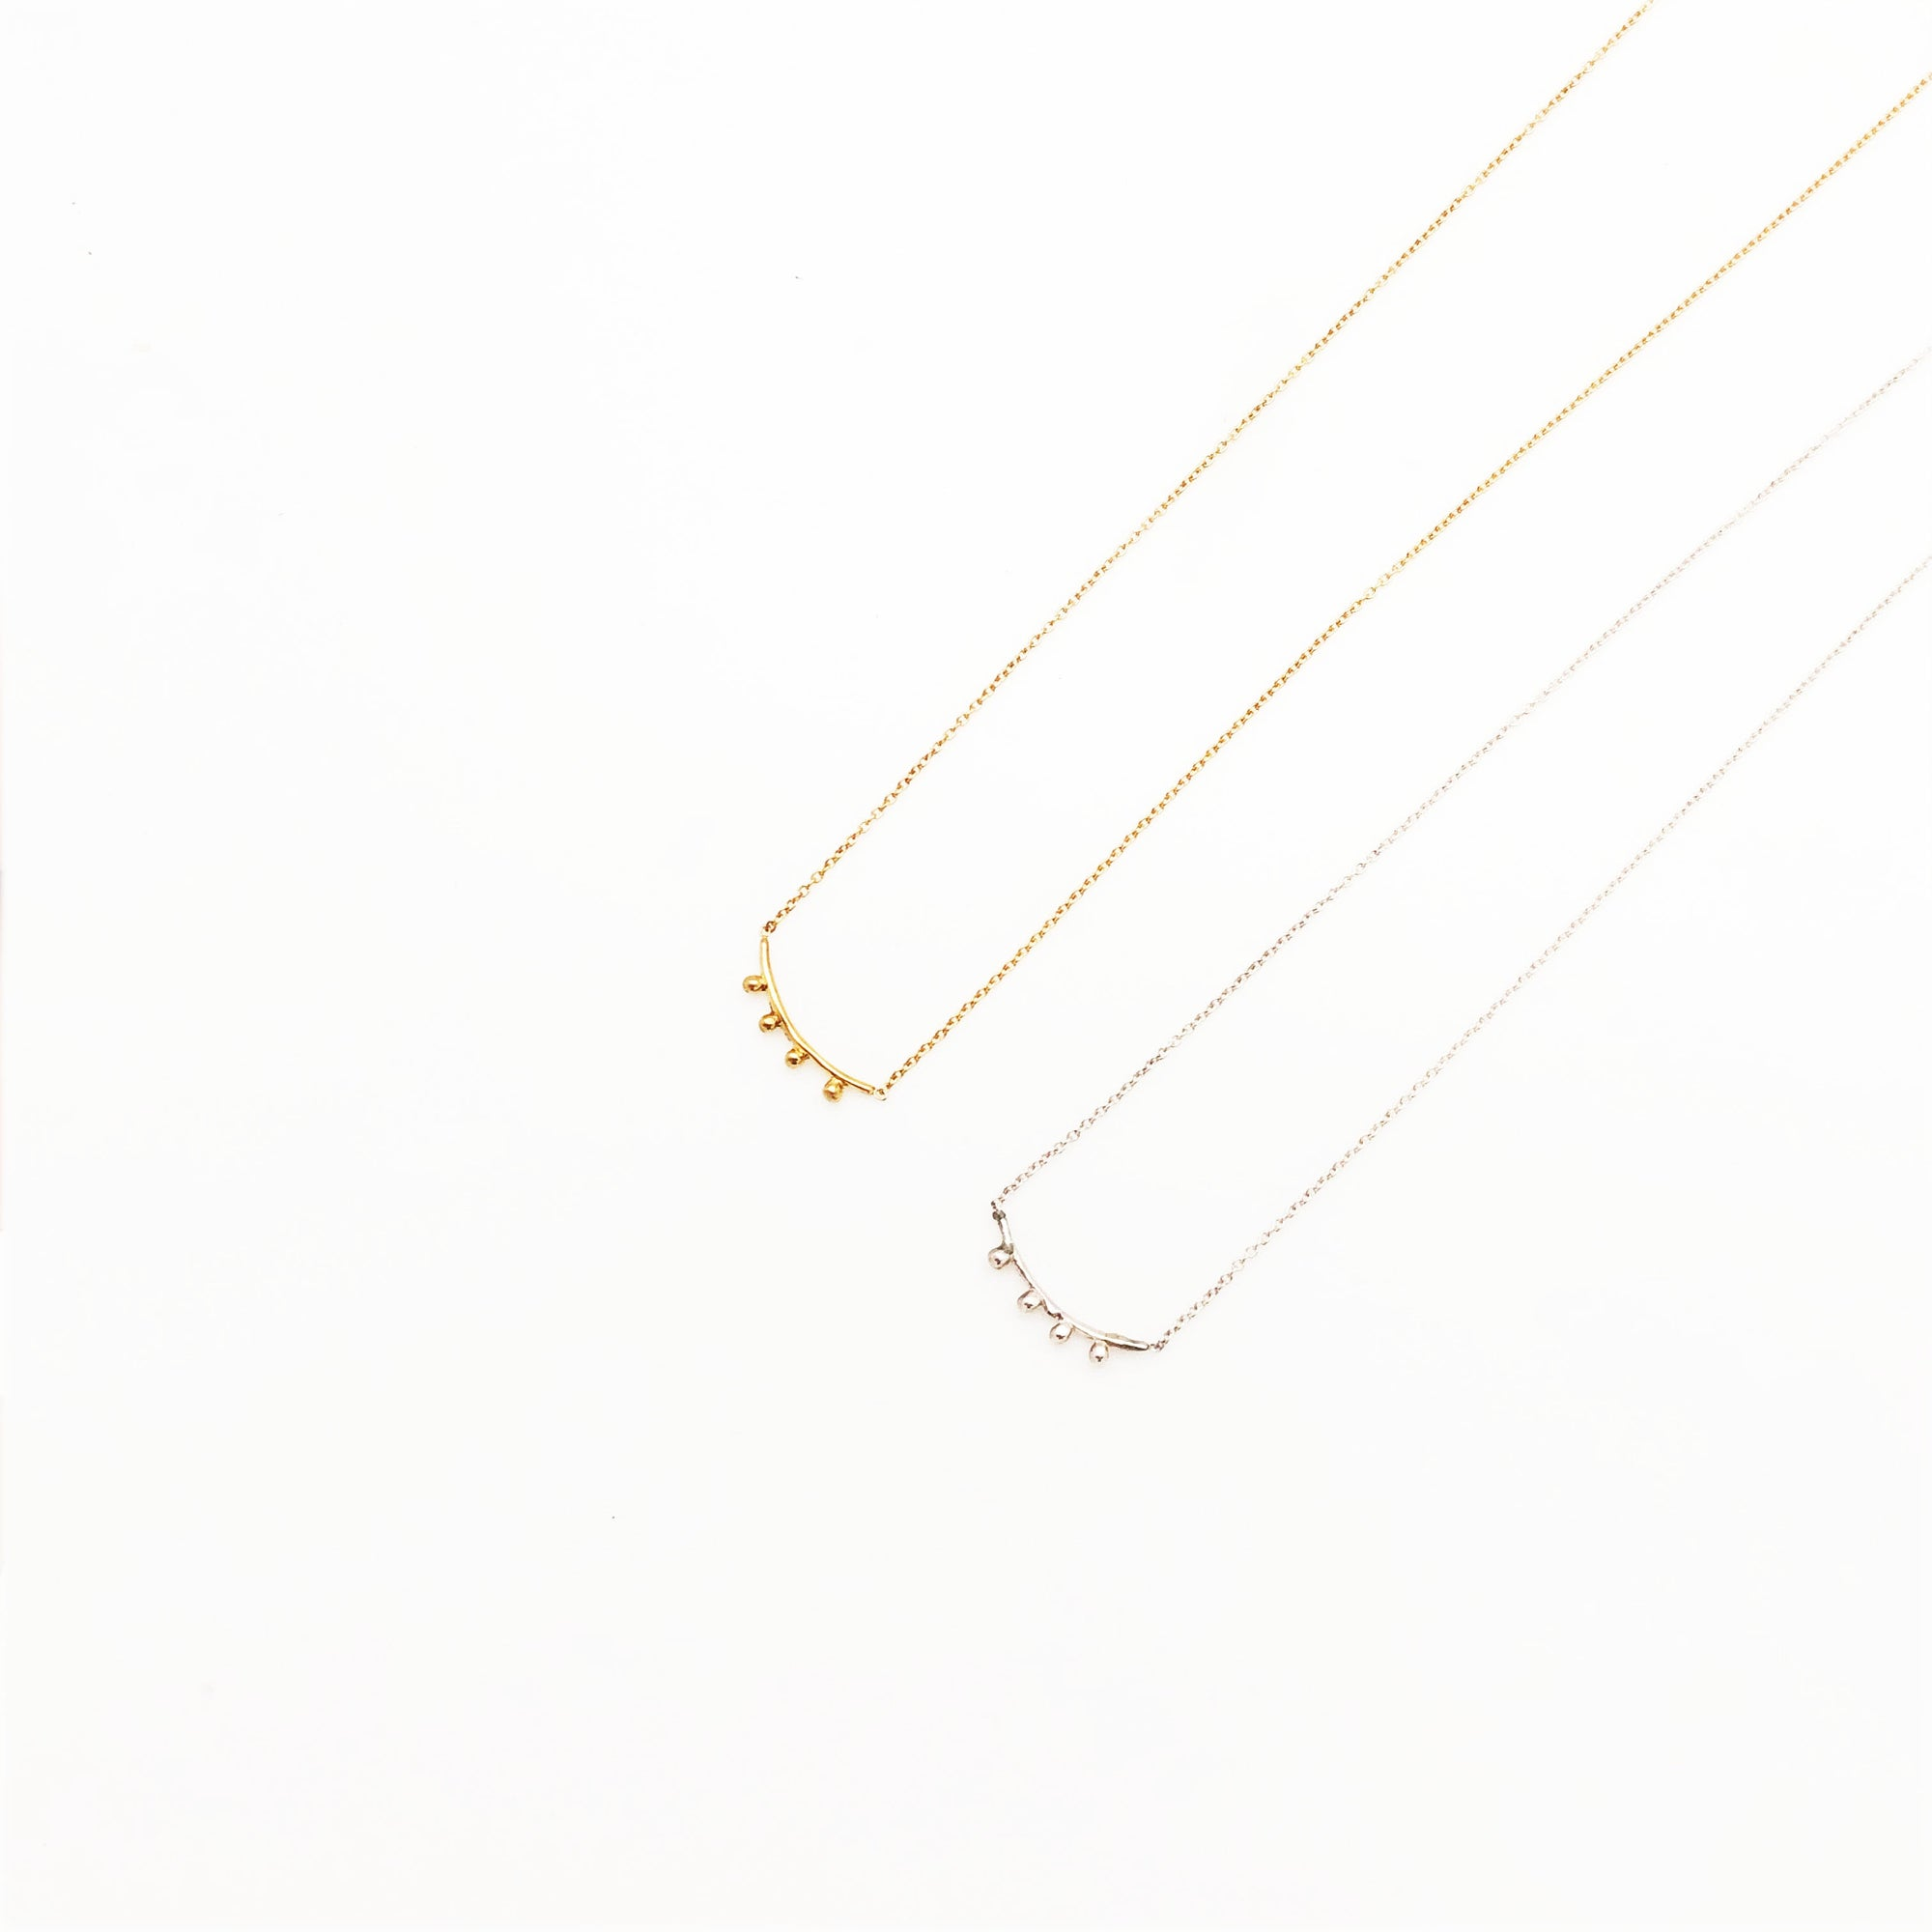 Raindrop Joy Necklace